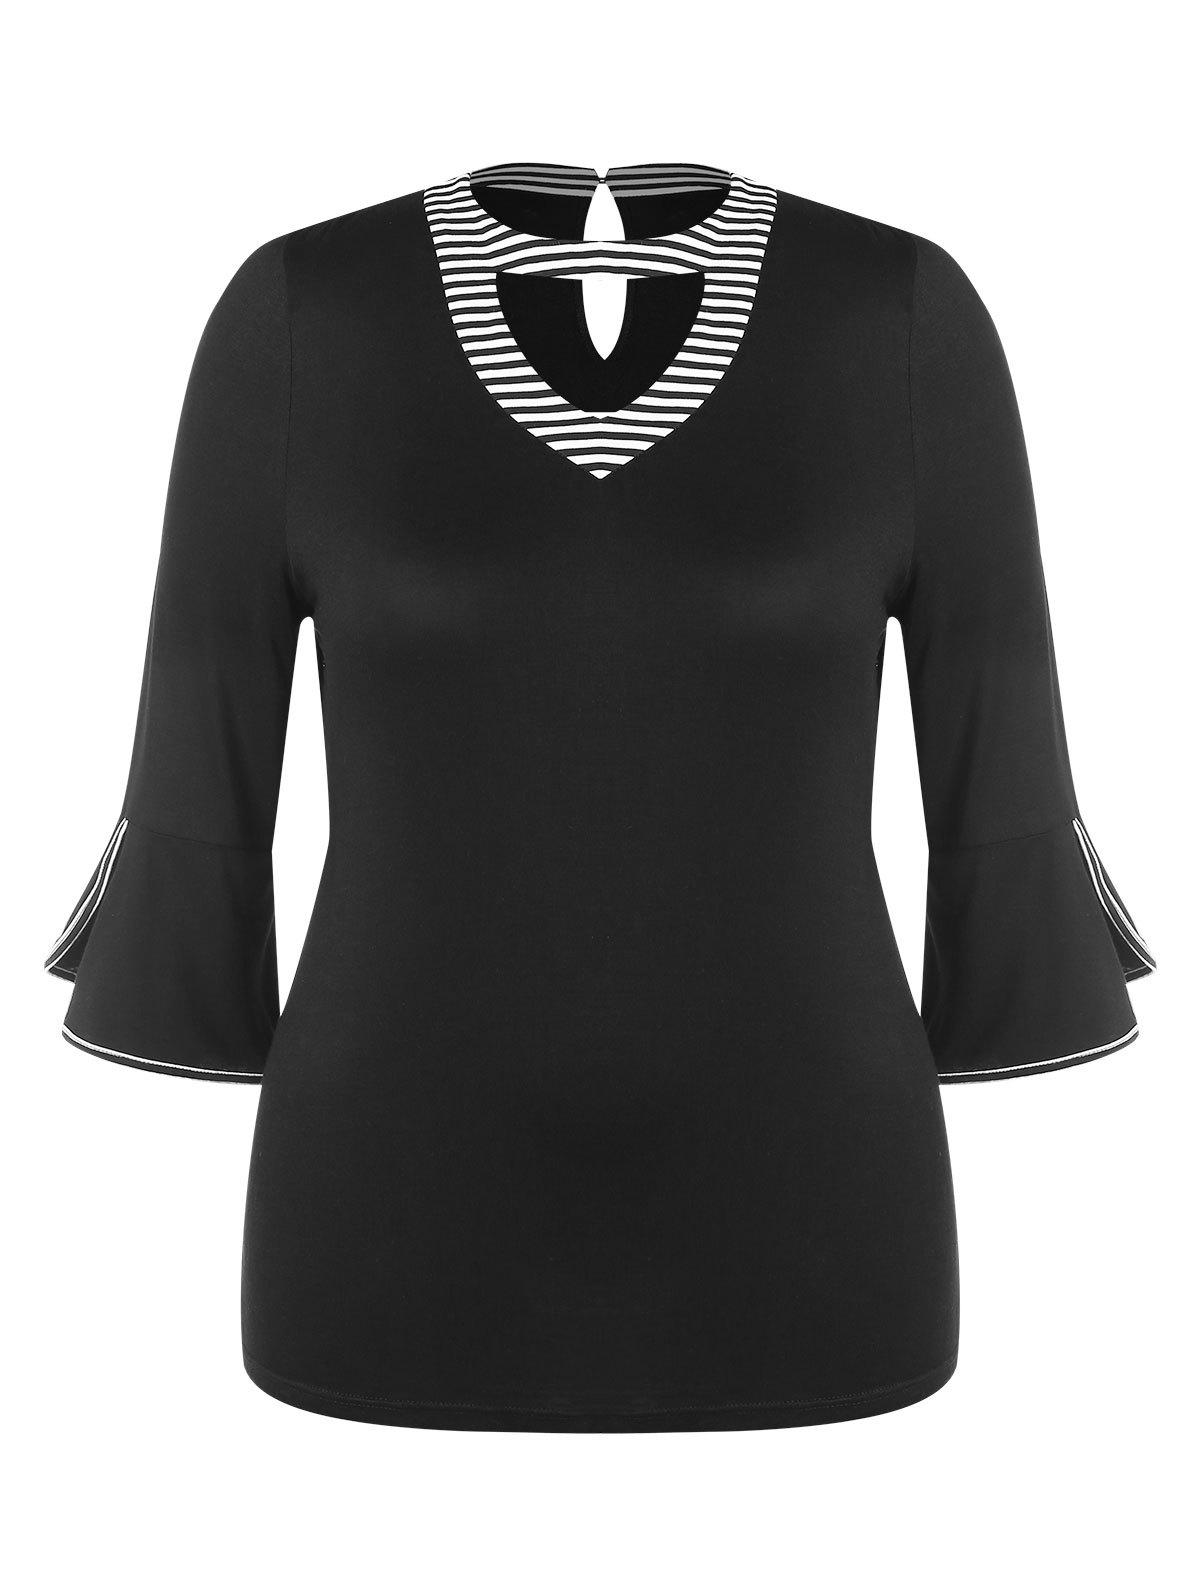 Hot Cutout Neck Plus Size Belled Cuff Tee